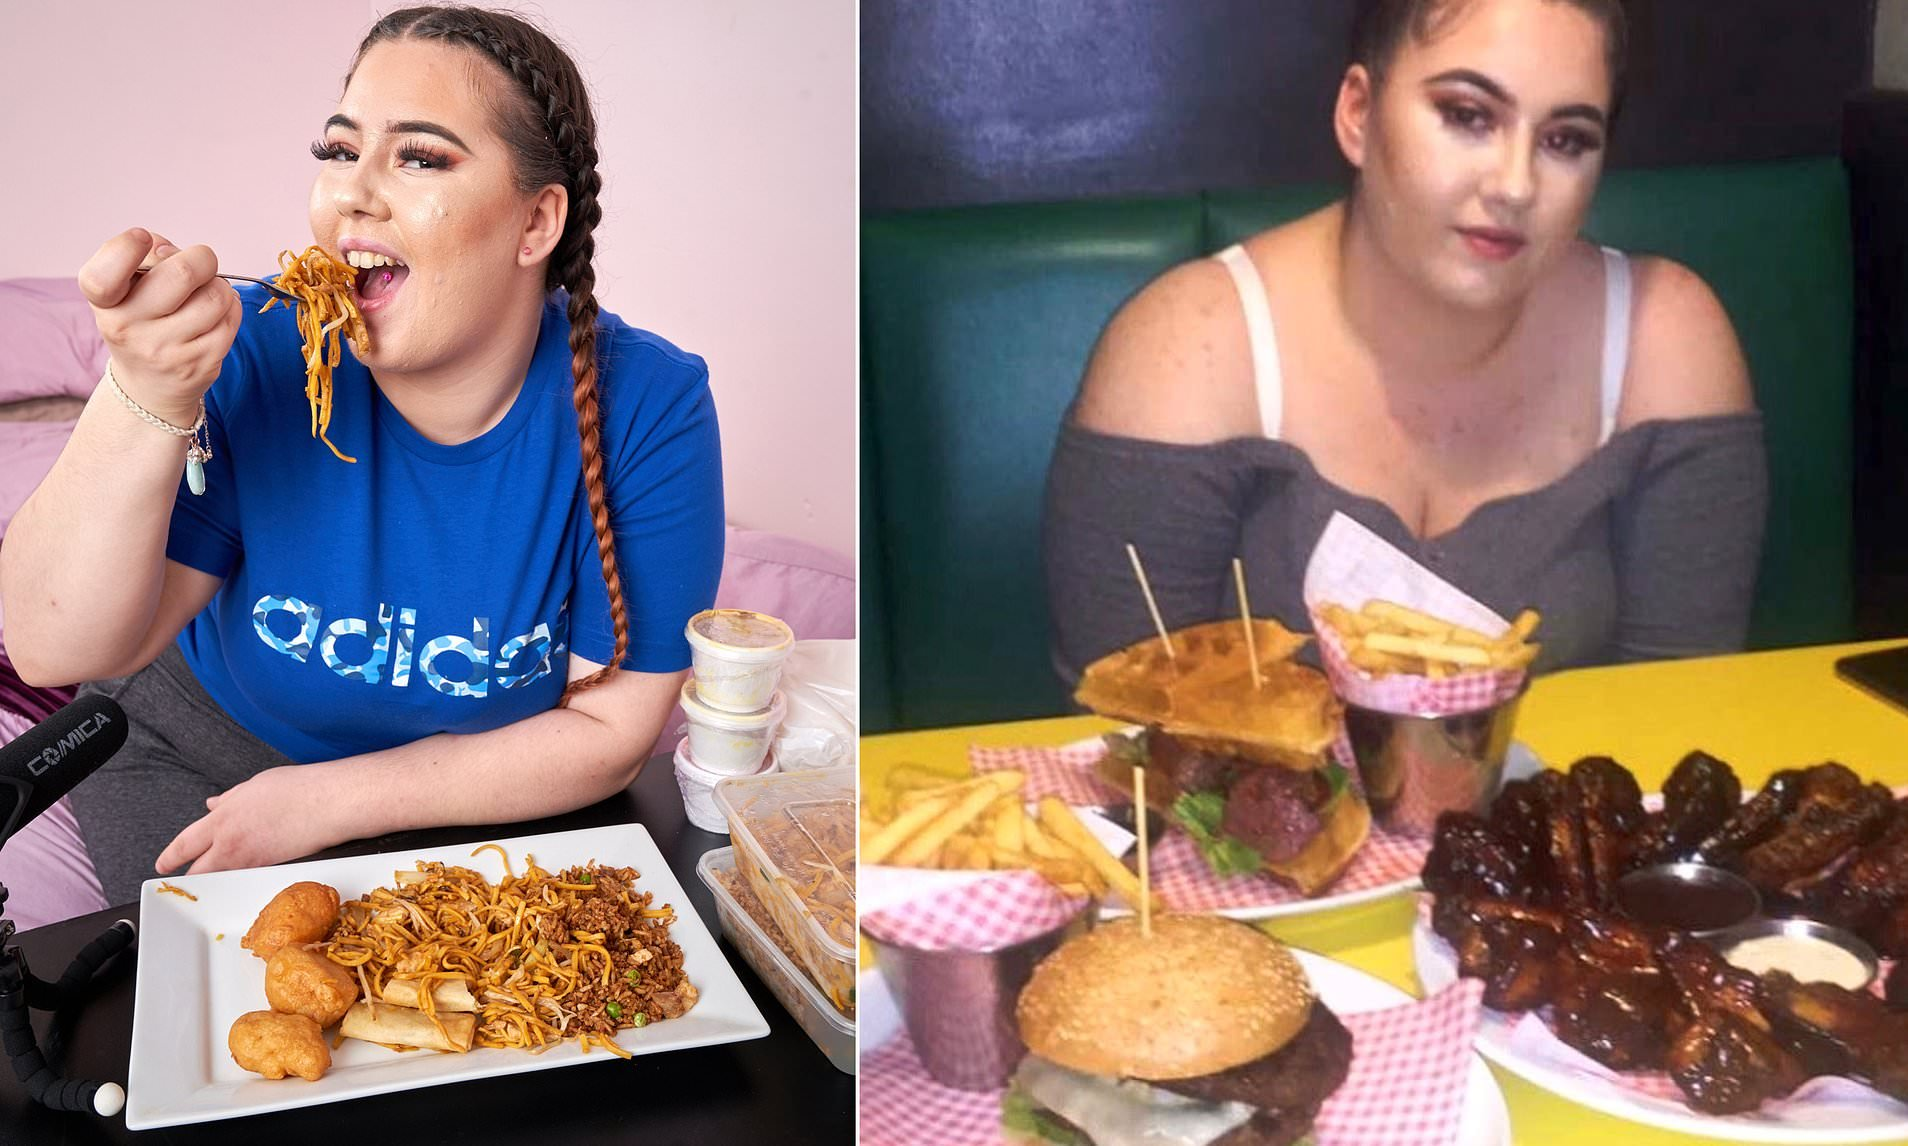 e3.jpg?resize=1200,630 - A Woman Eats 5,000-Calorie Meals In Hopes To Becoming A Youtube Star